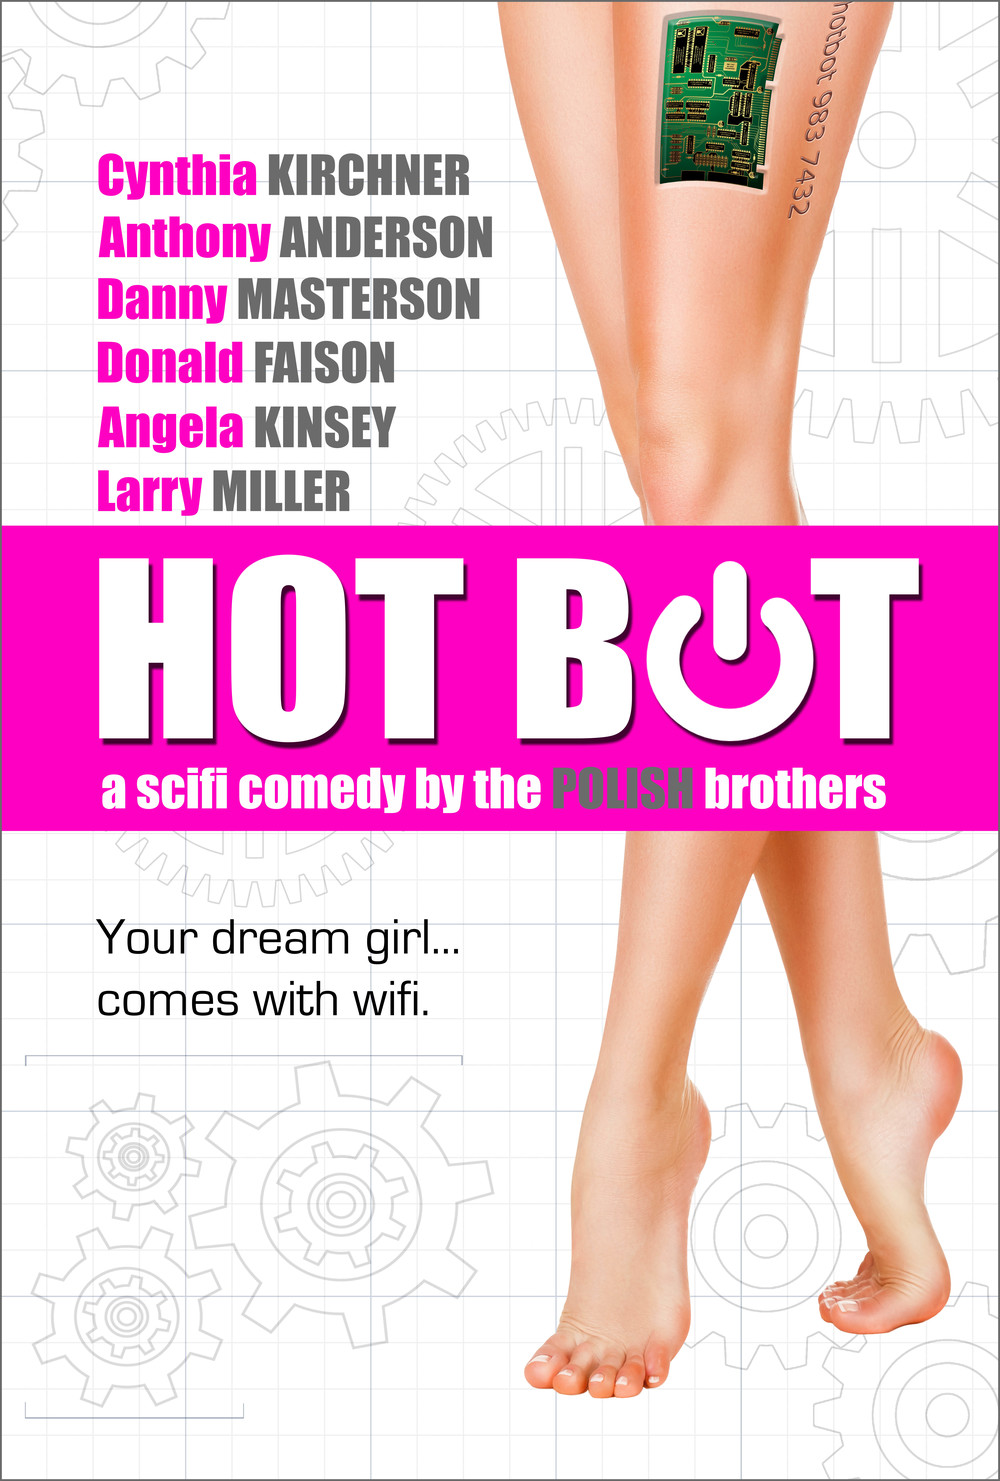 HOT BOT KeyArt-GOOD-11-10.jpg